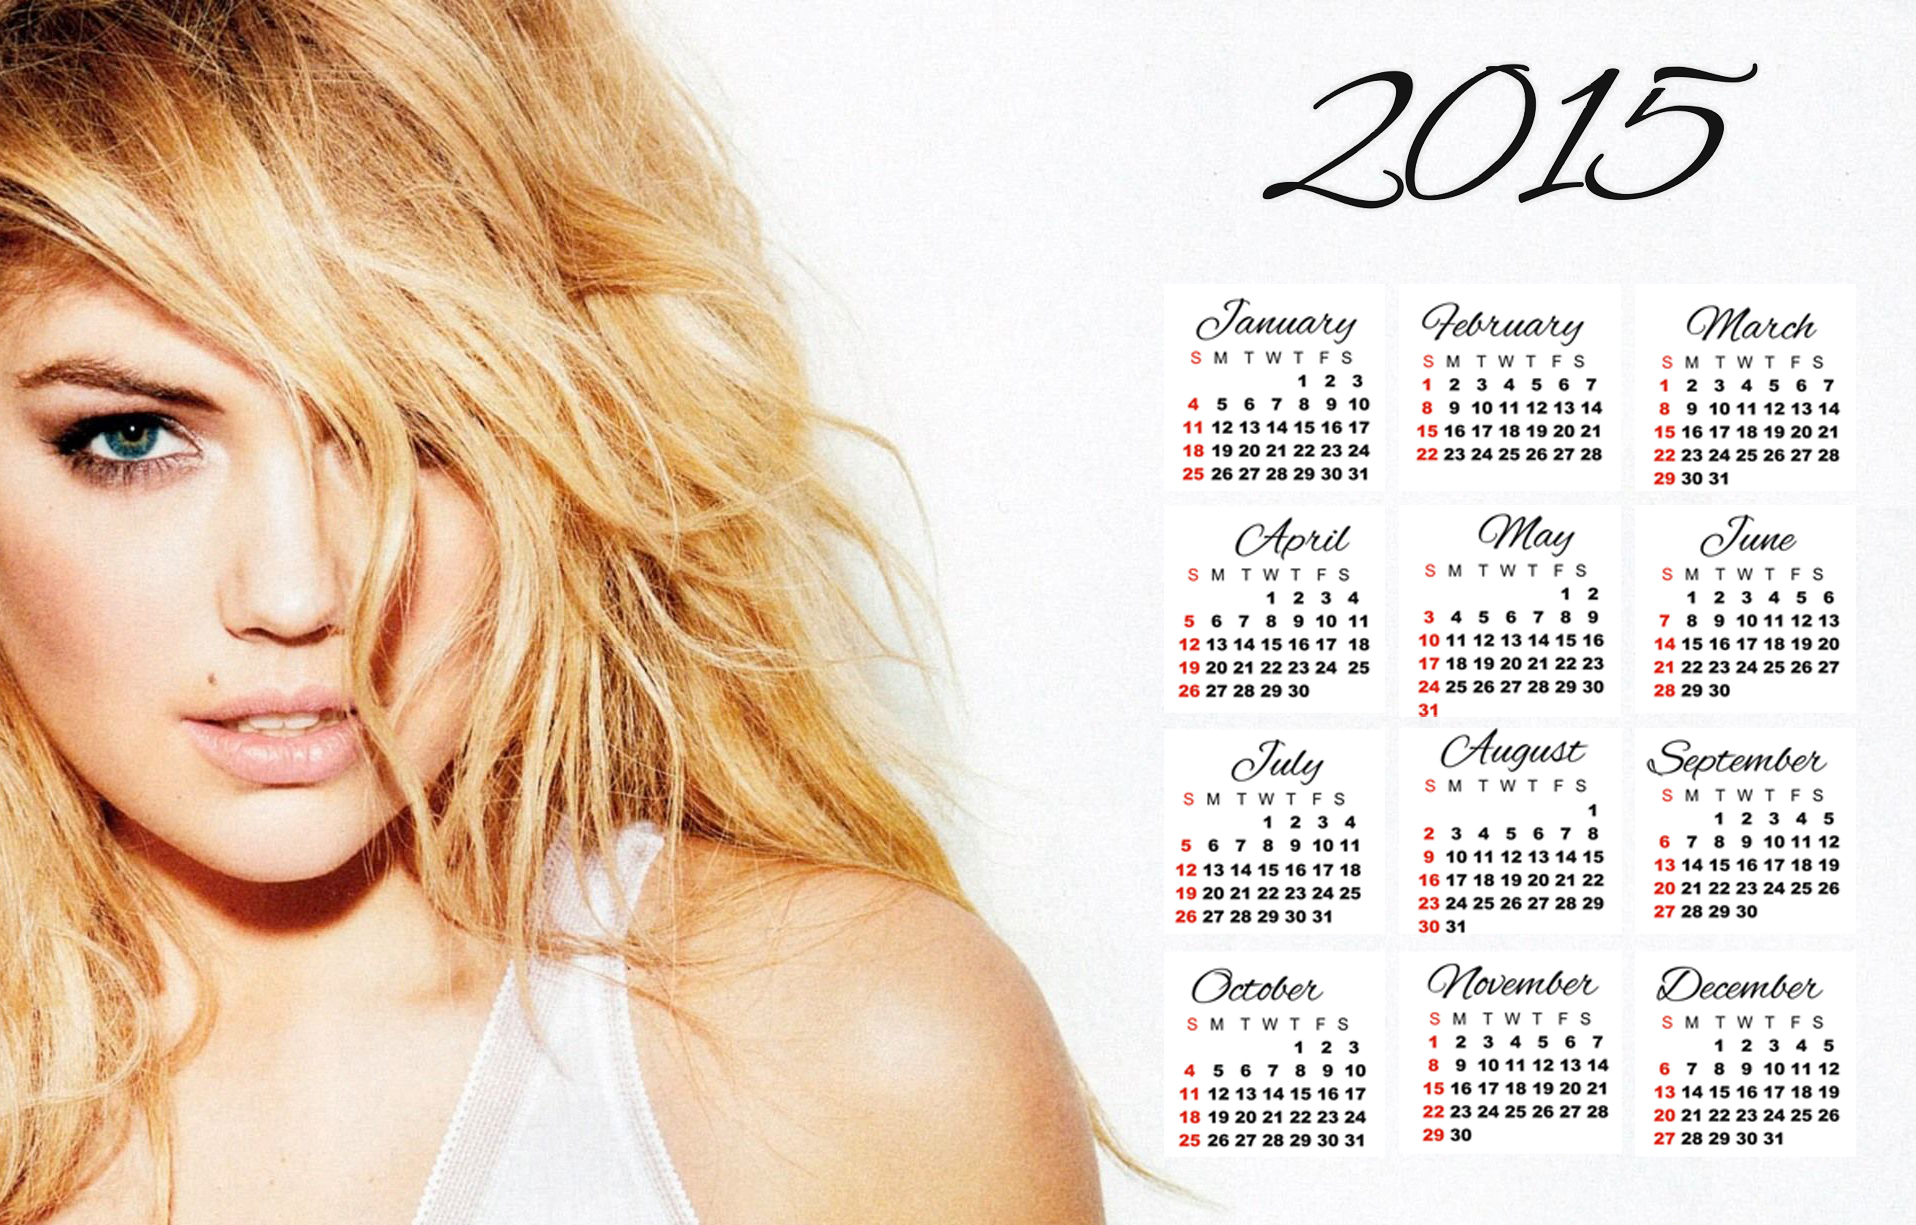 Kate Upton sexy wallpaper calendar 2015